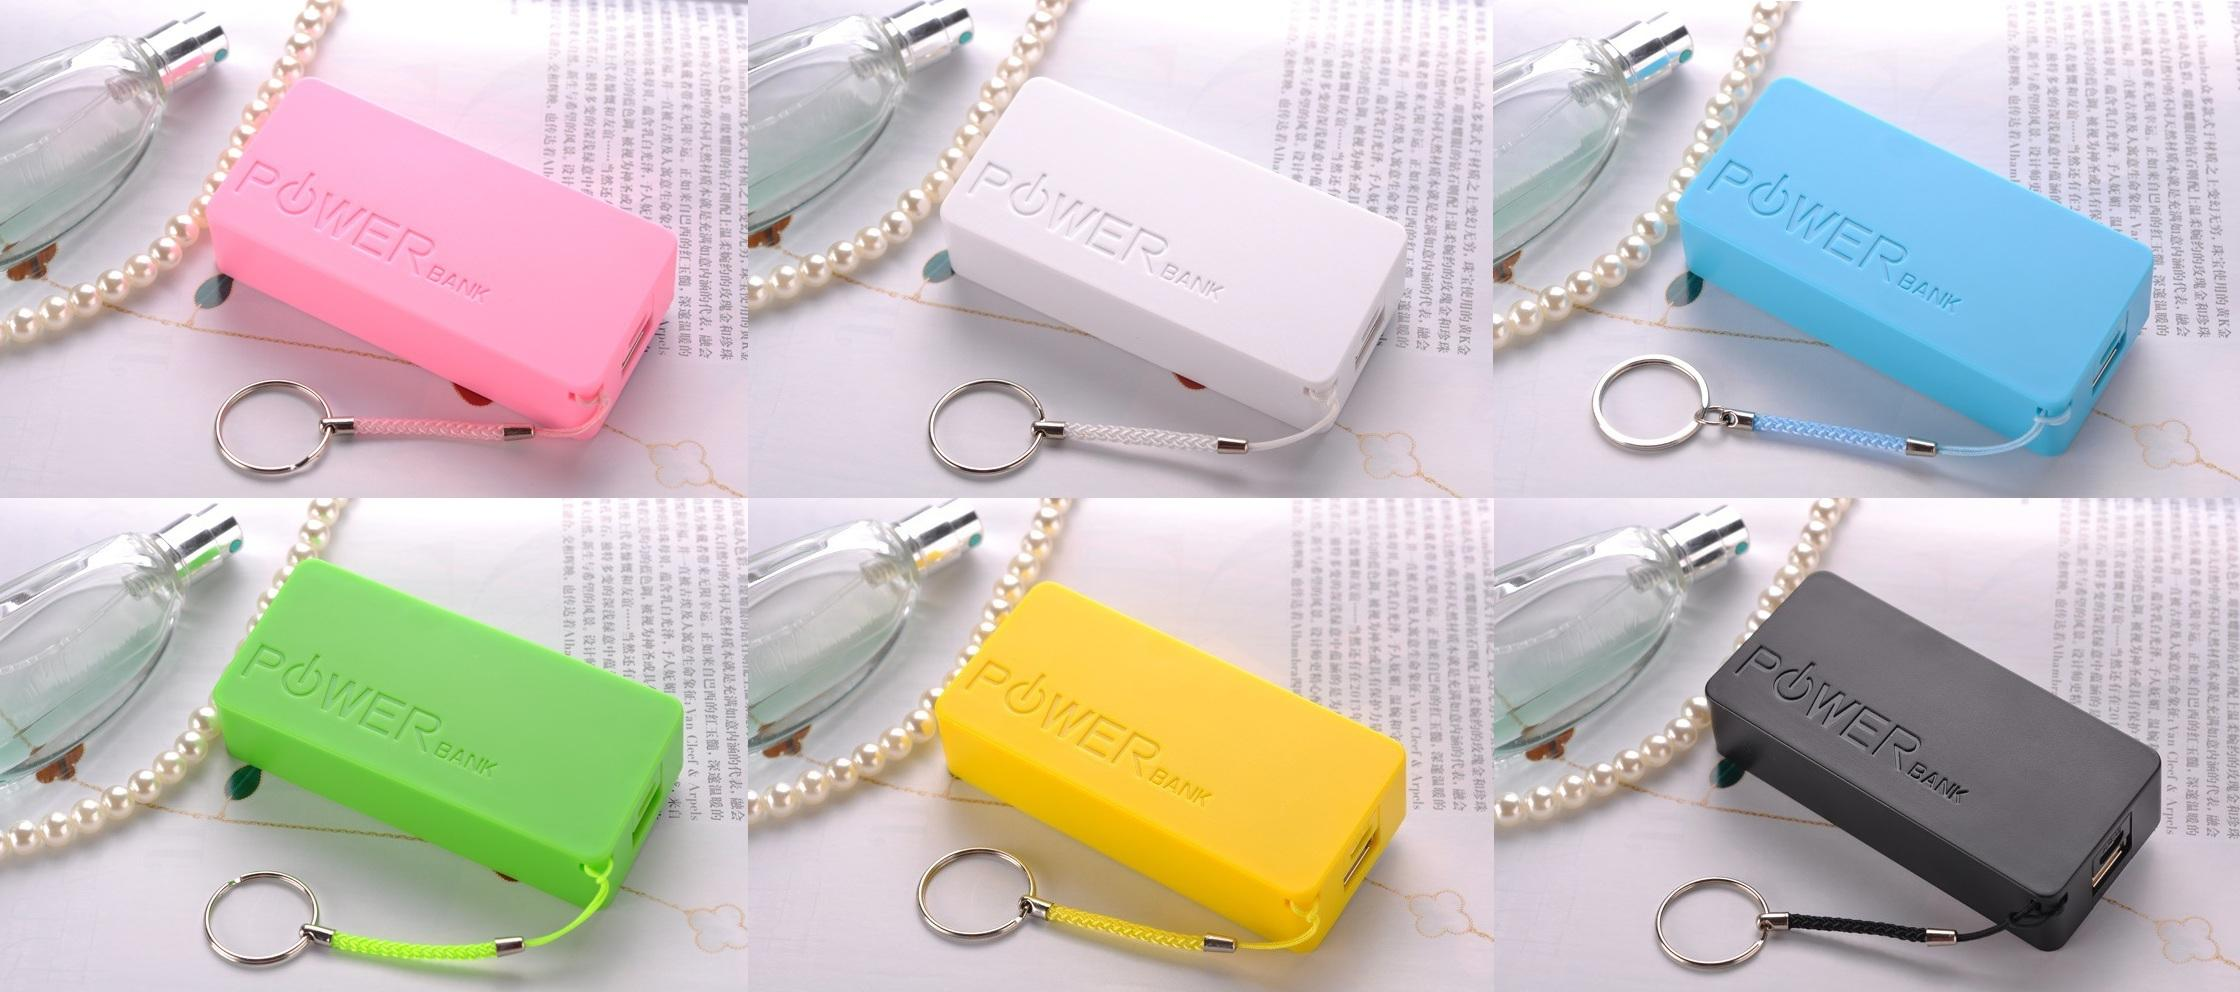 Perfume Power Bank 5200mAh Portable Charger FREE USB Cable+charger~!